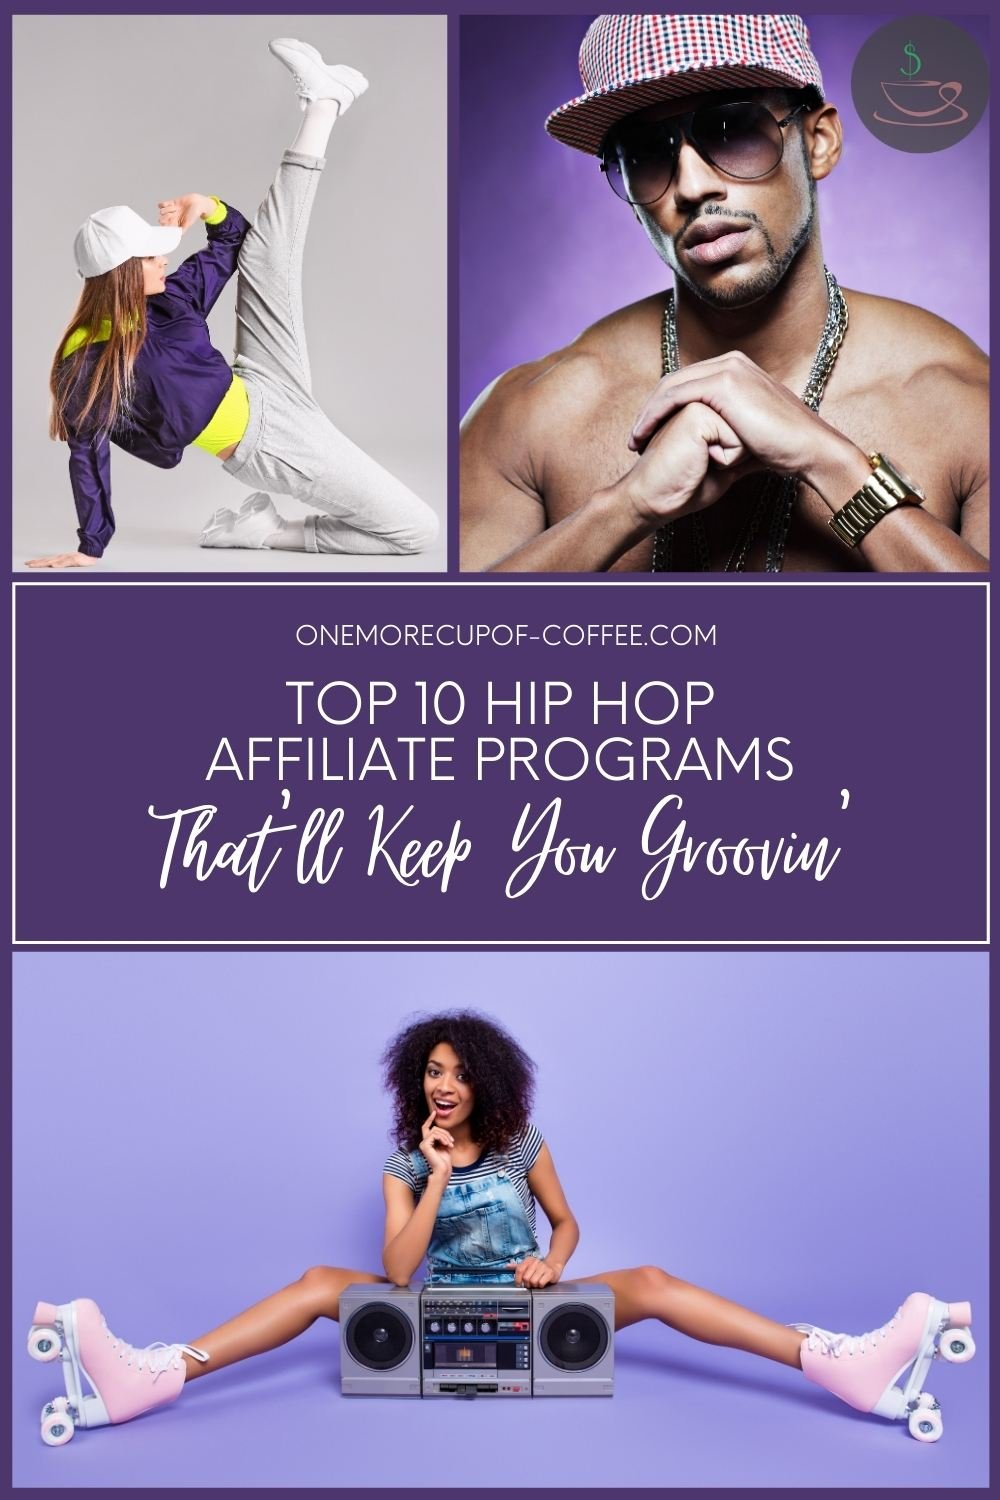 photo collage of two female and one male hip hop artist, with text overlay